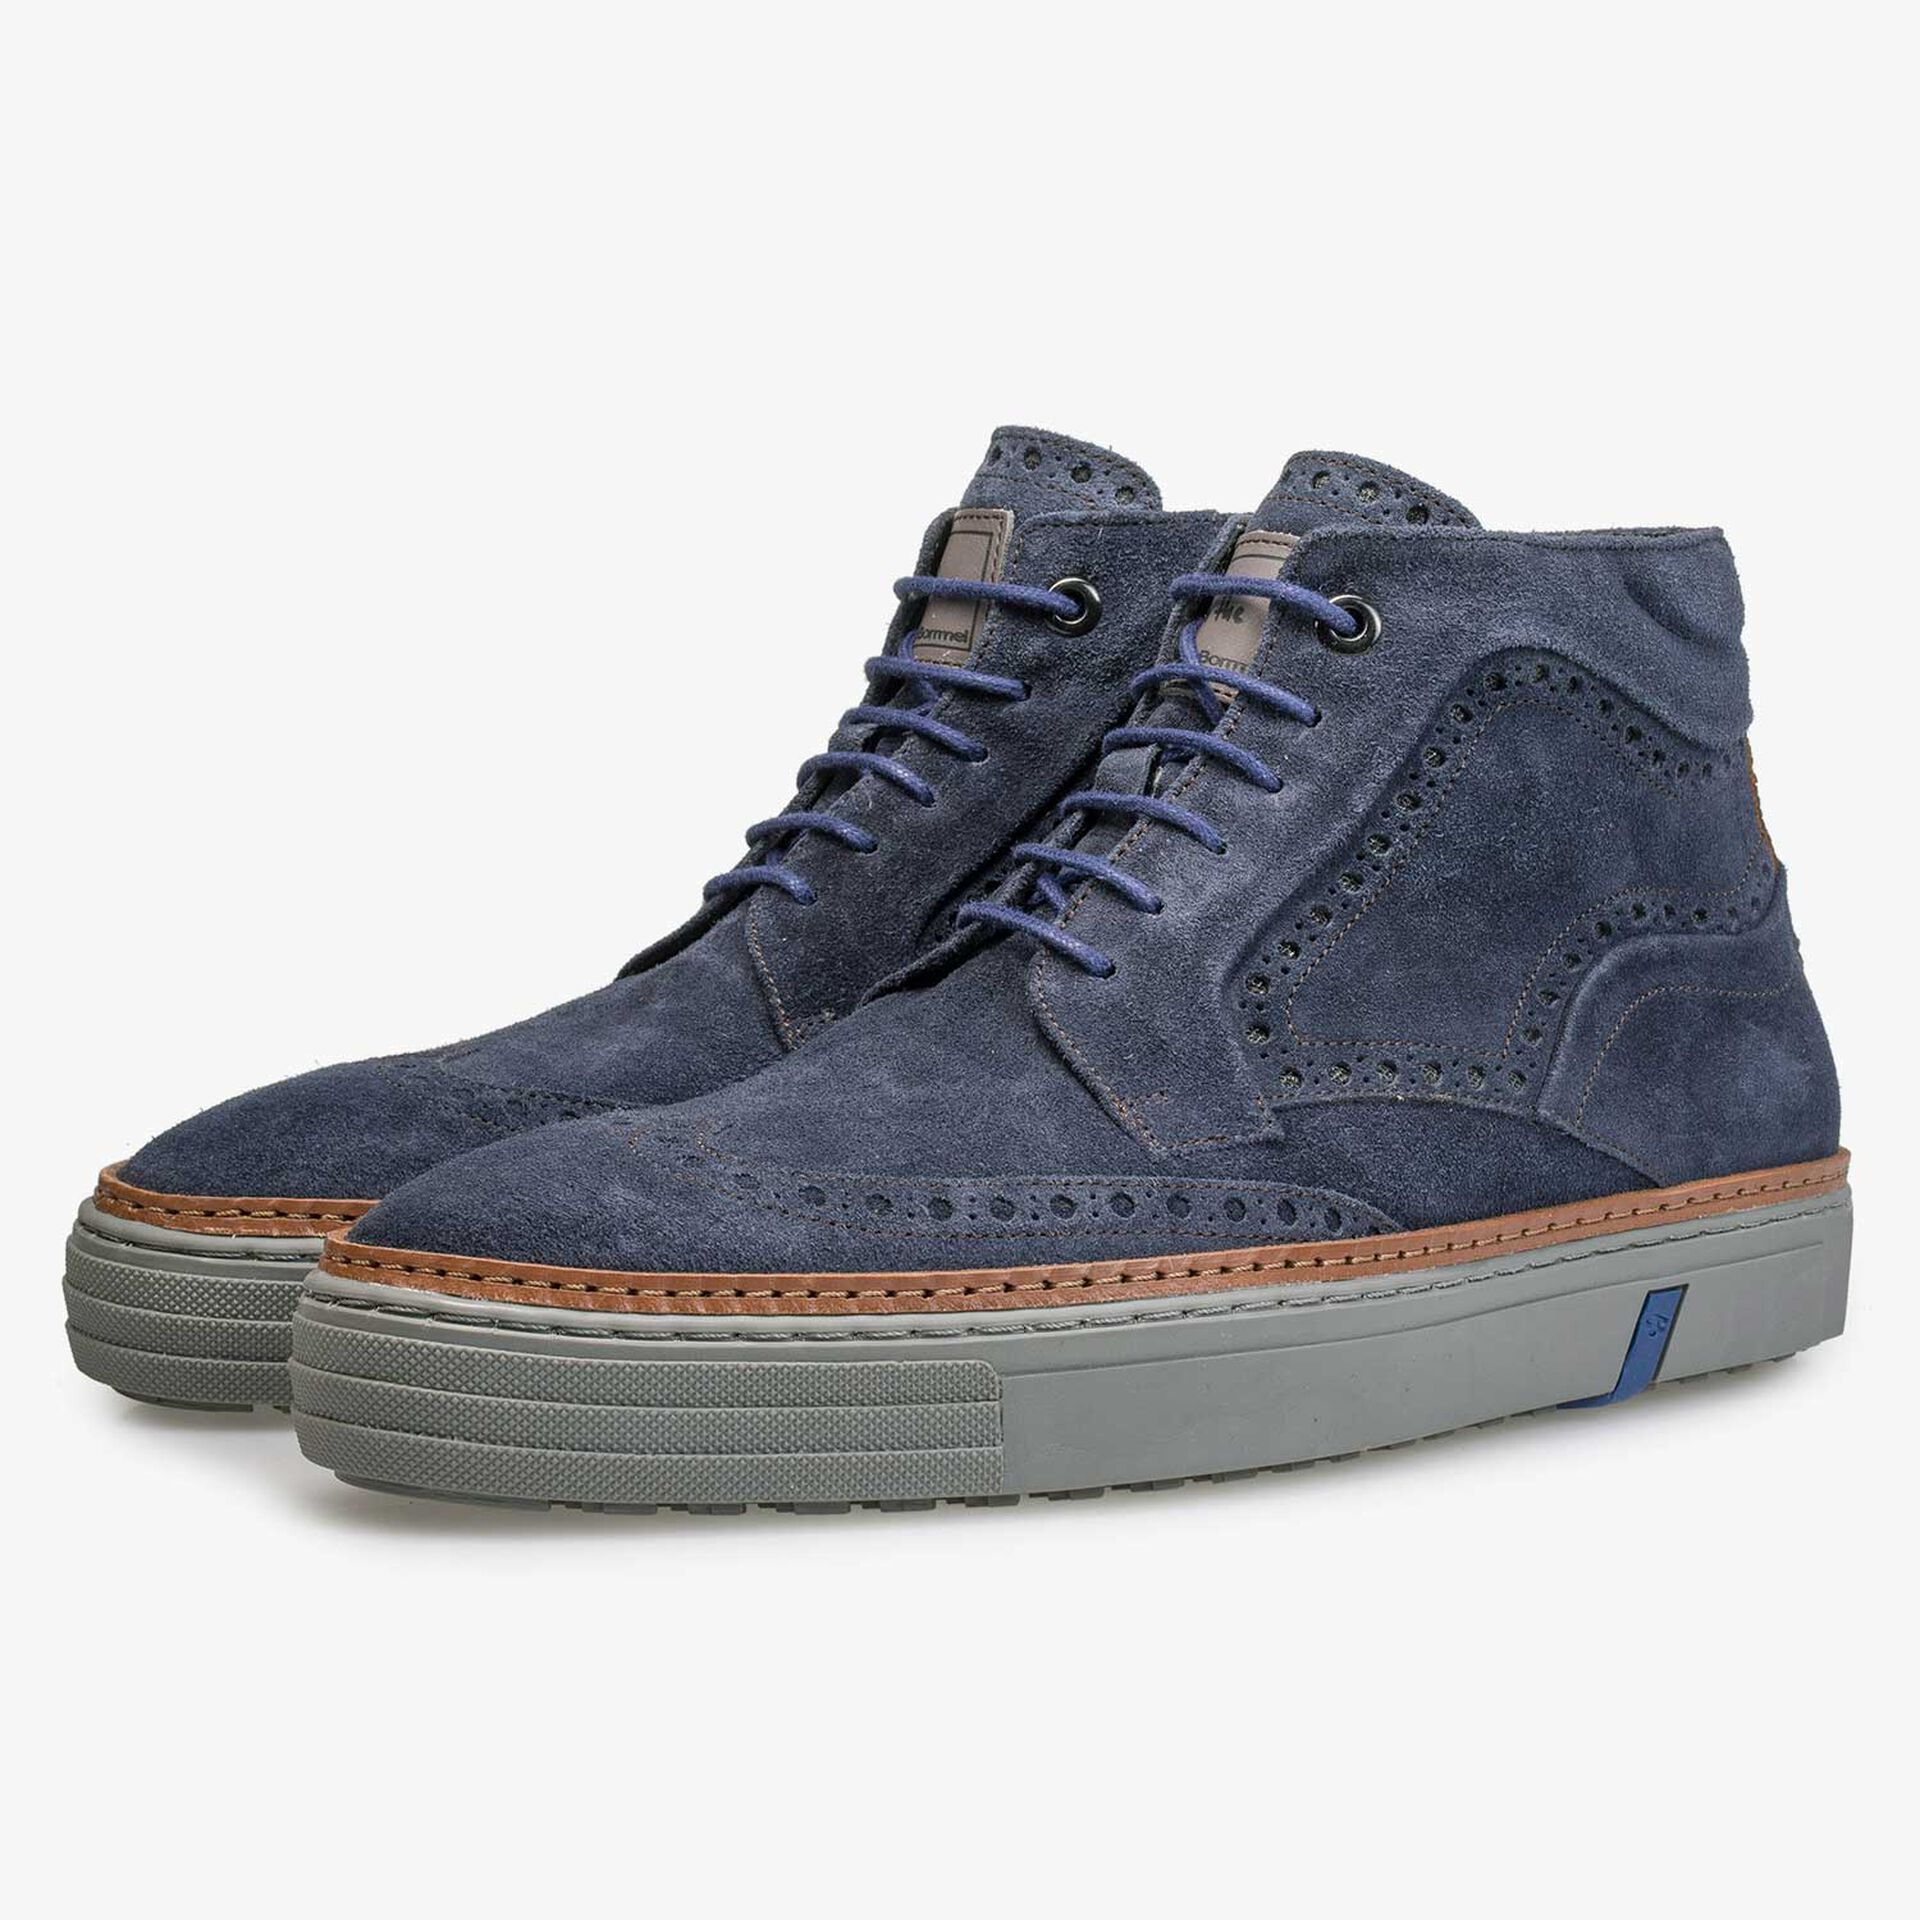 Blue suede leather brogue sneaker